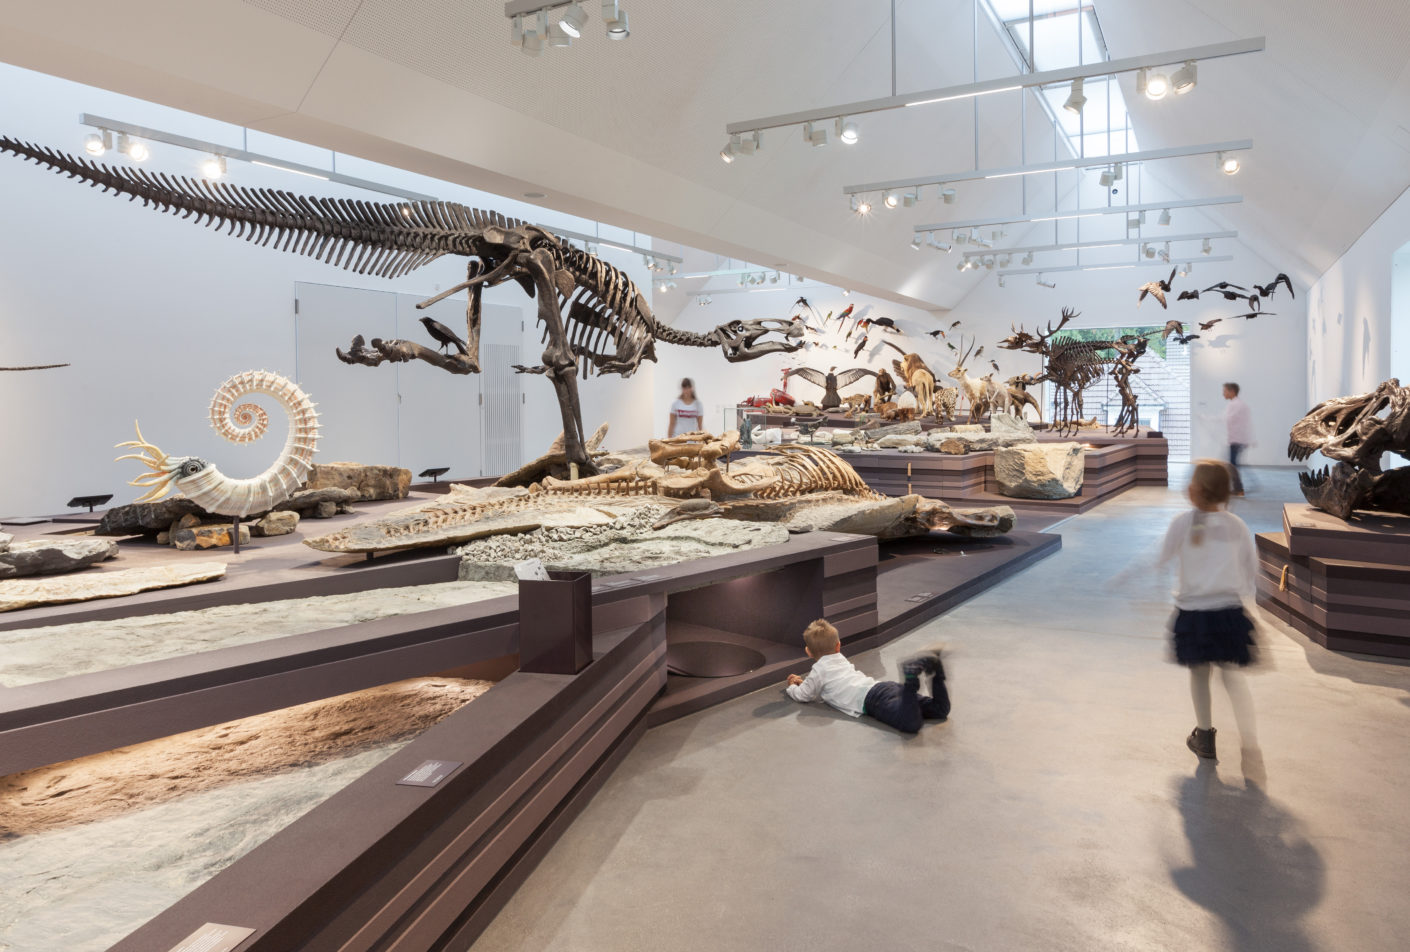 Dinosaur skeletons at the Natural History Museum St Gallen, Meier Hug and Armon Semadeni Architects, Switzerland, 2017